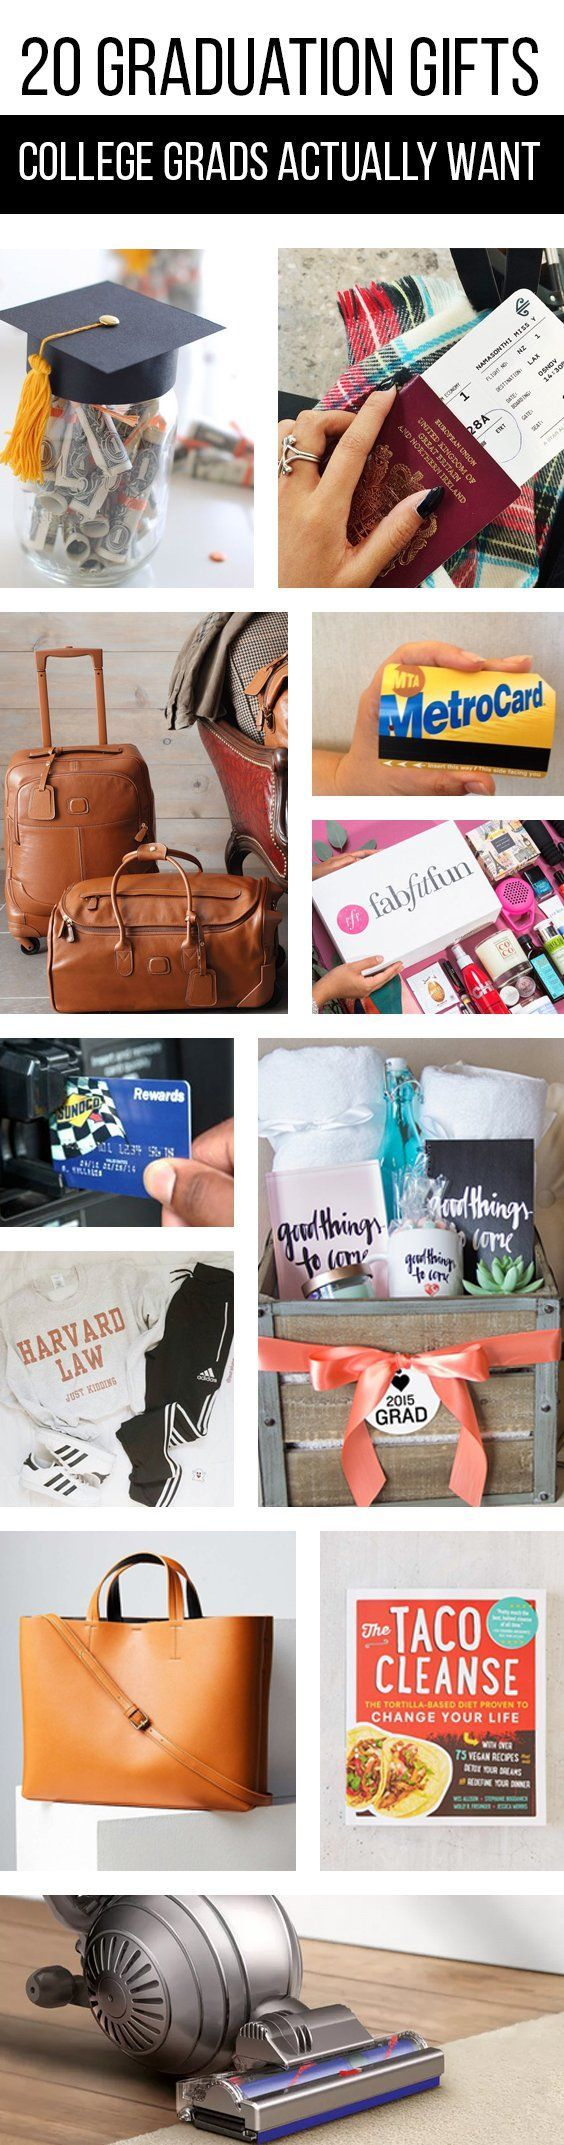 20 Graduation Gifts College Grads Actually Want (And Need)! No more fretting over giving just cash at upcoming graduation parties. Stand out with these great and thoughtful gifts.